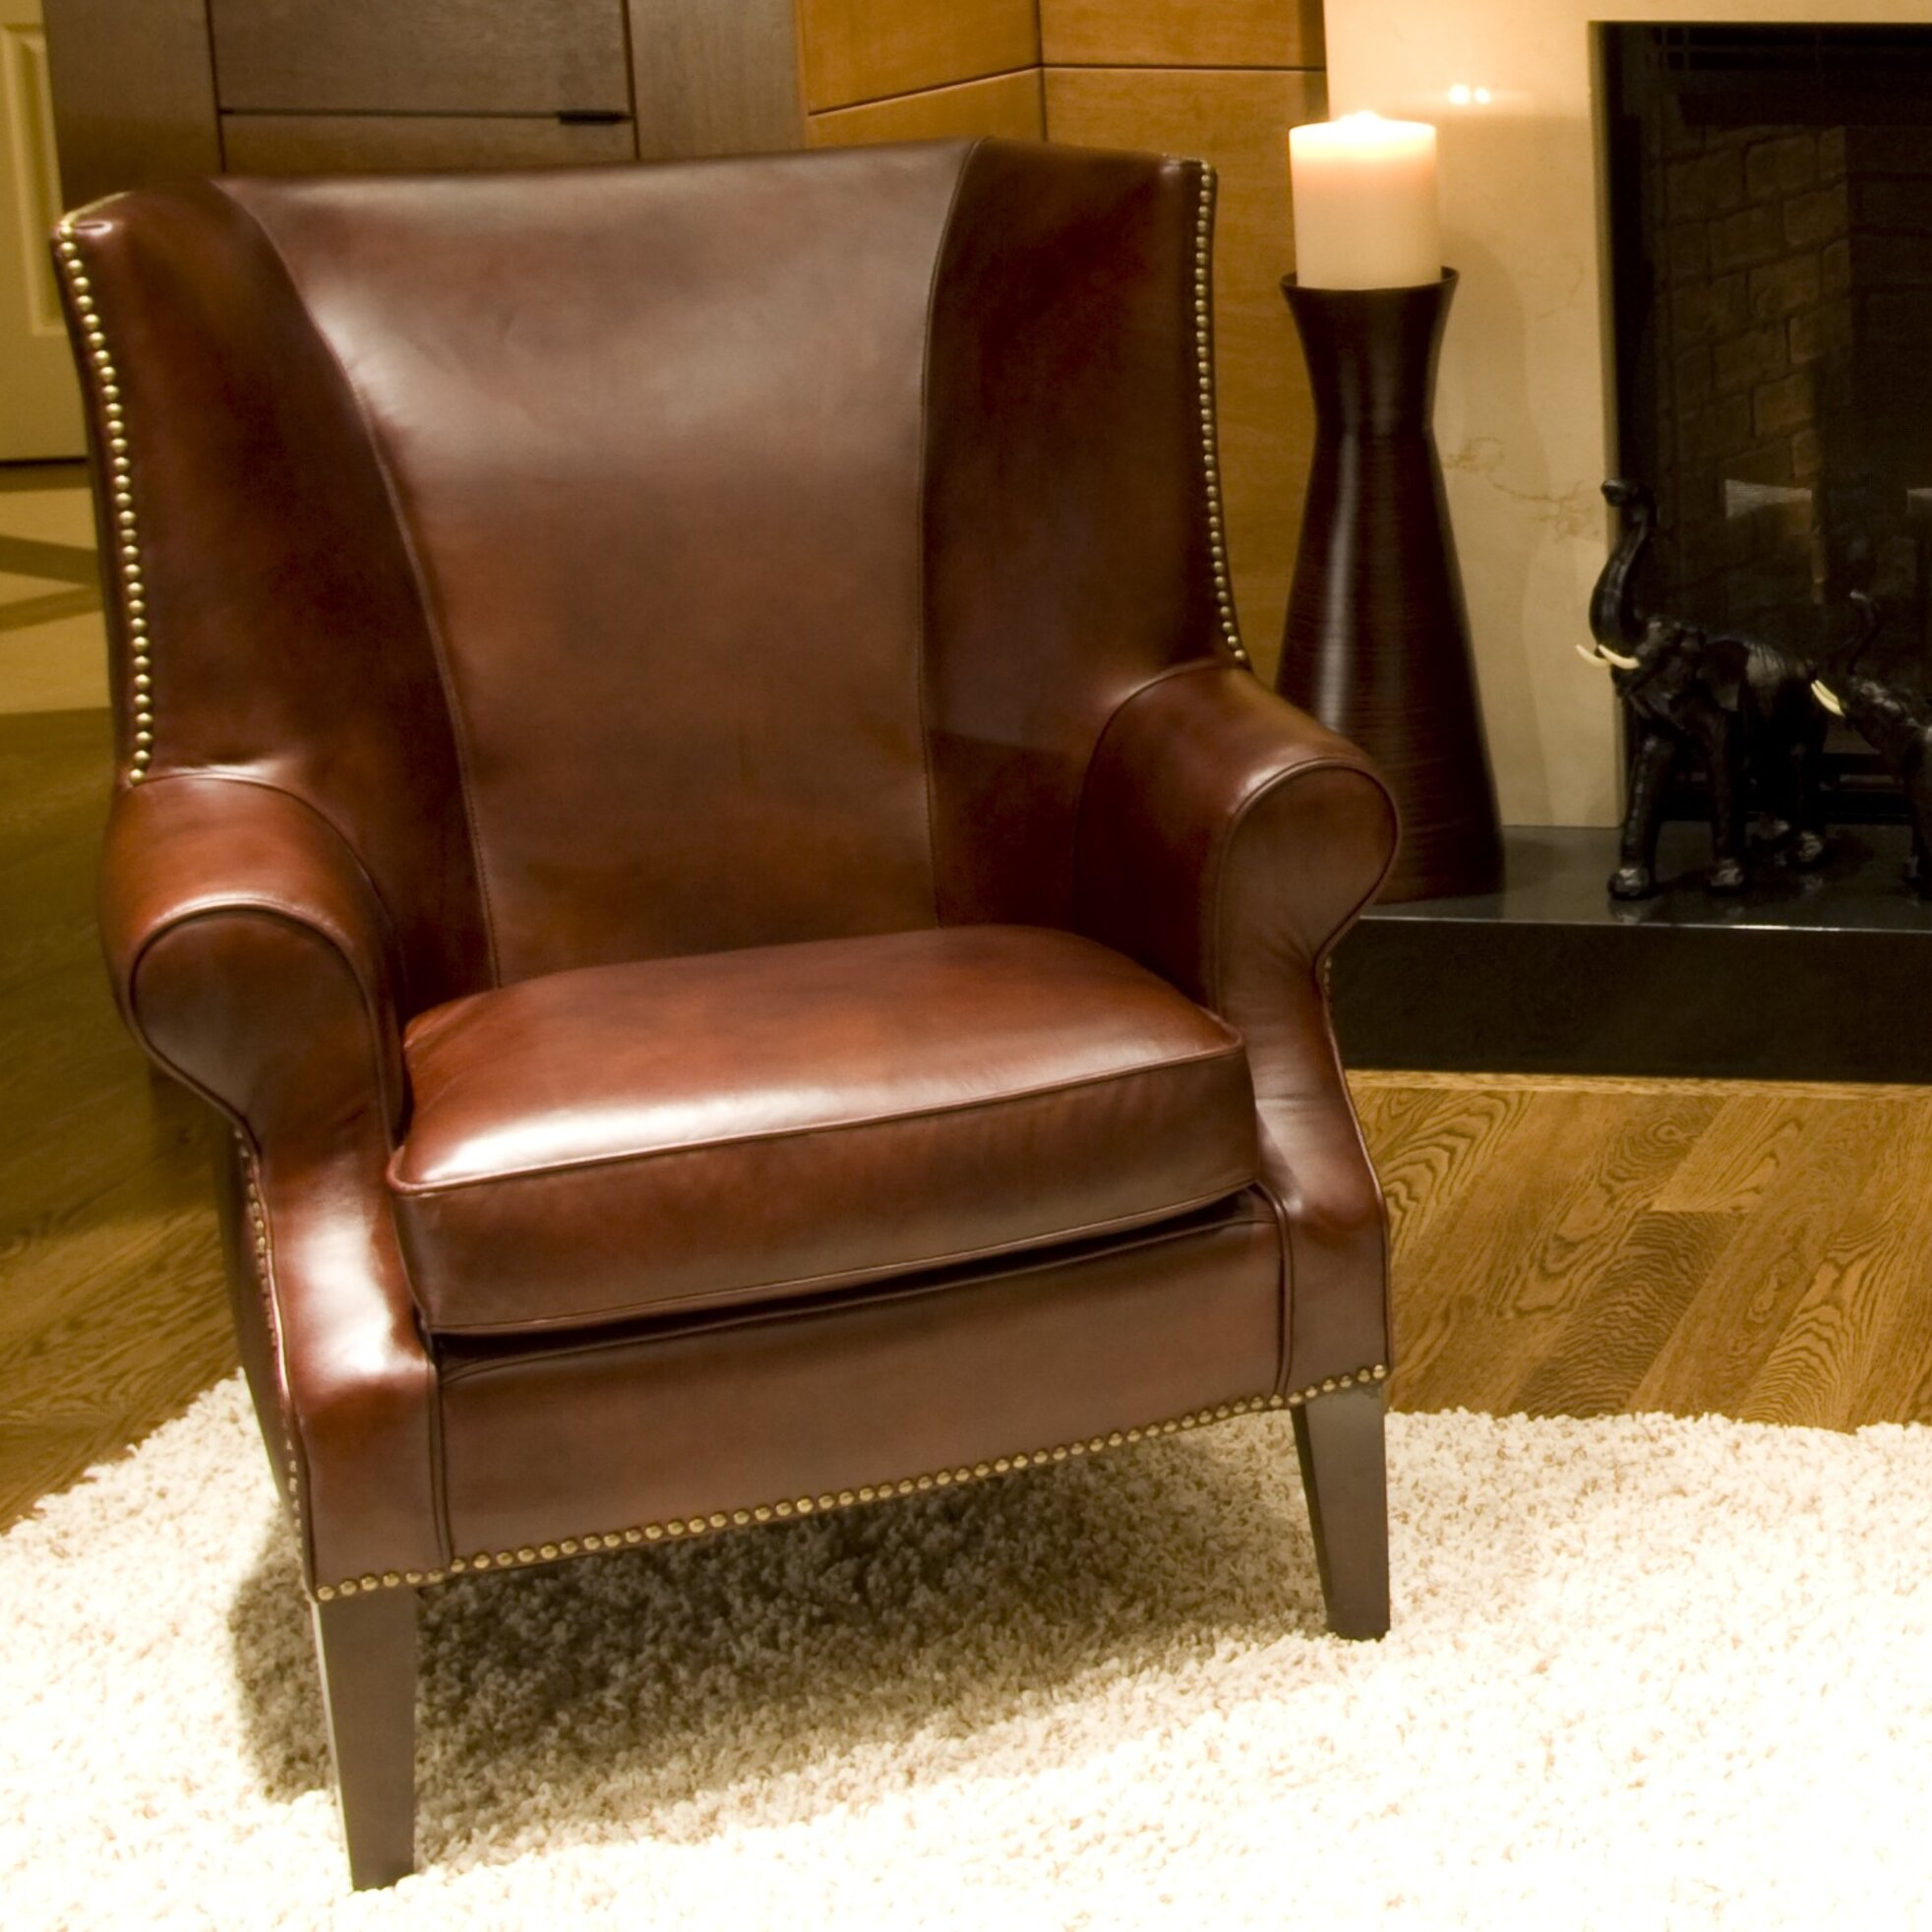 elements fine home furnishings camden top grain leather chair reviews wayfair. Black Bedroom Furniture Sets. Home Design Ideas